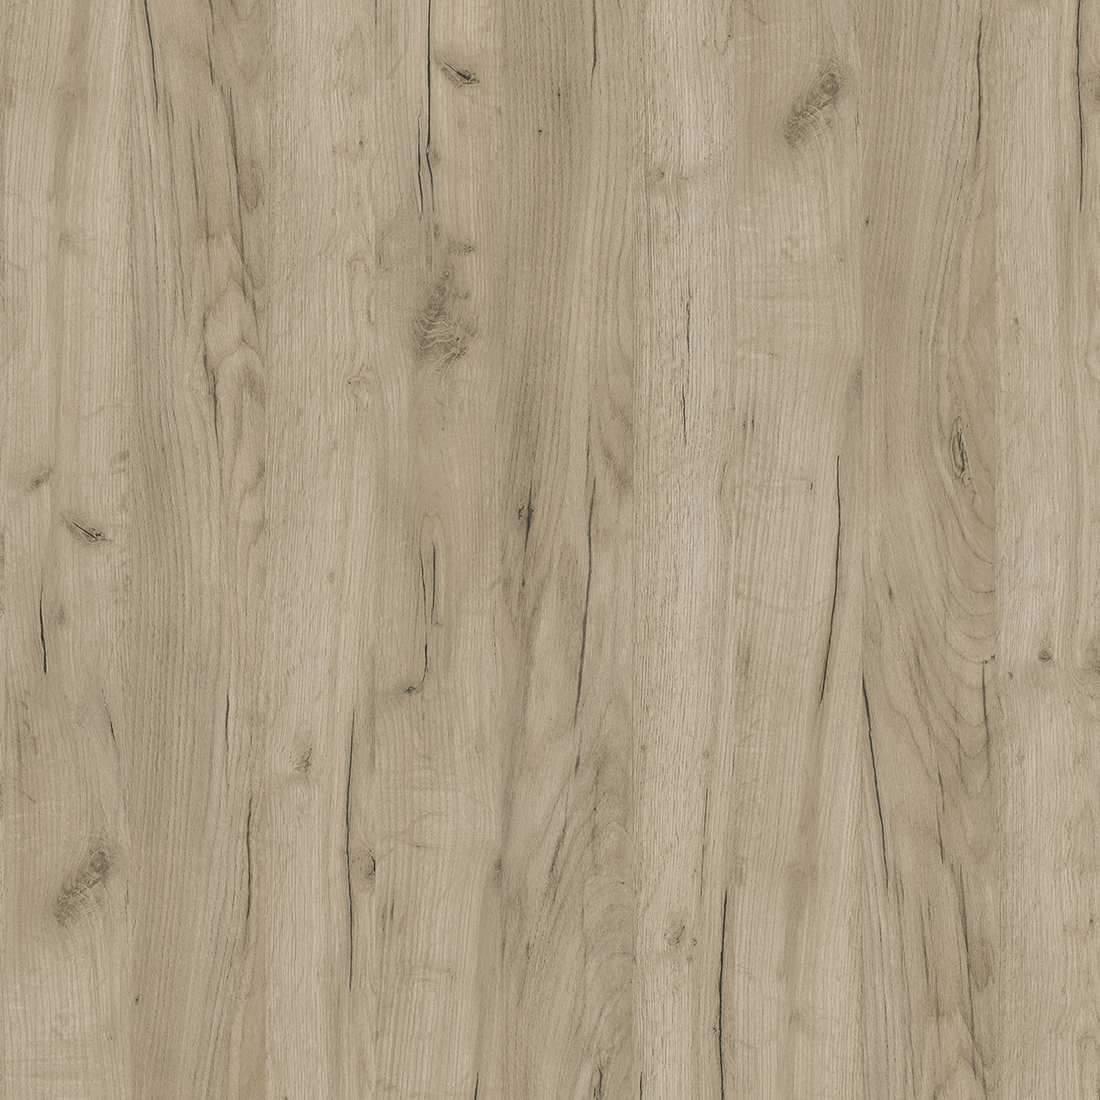 Krono K002PW Tölgy Grey Craft Oak bútorlap 18 mm